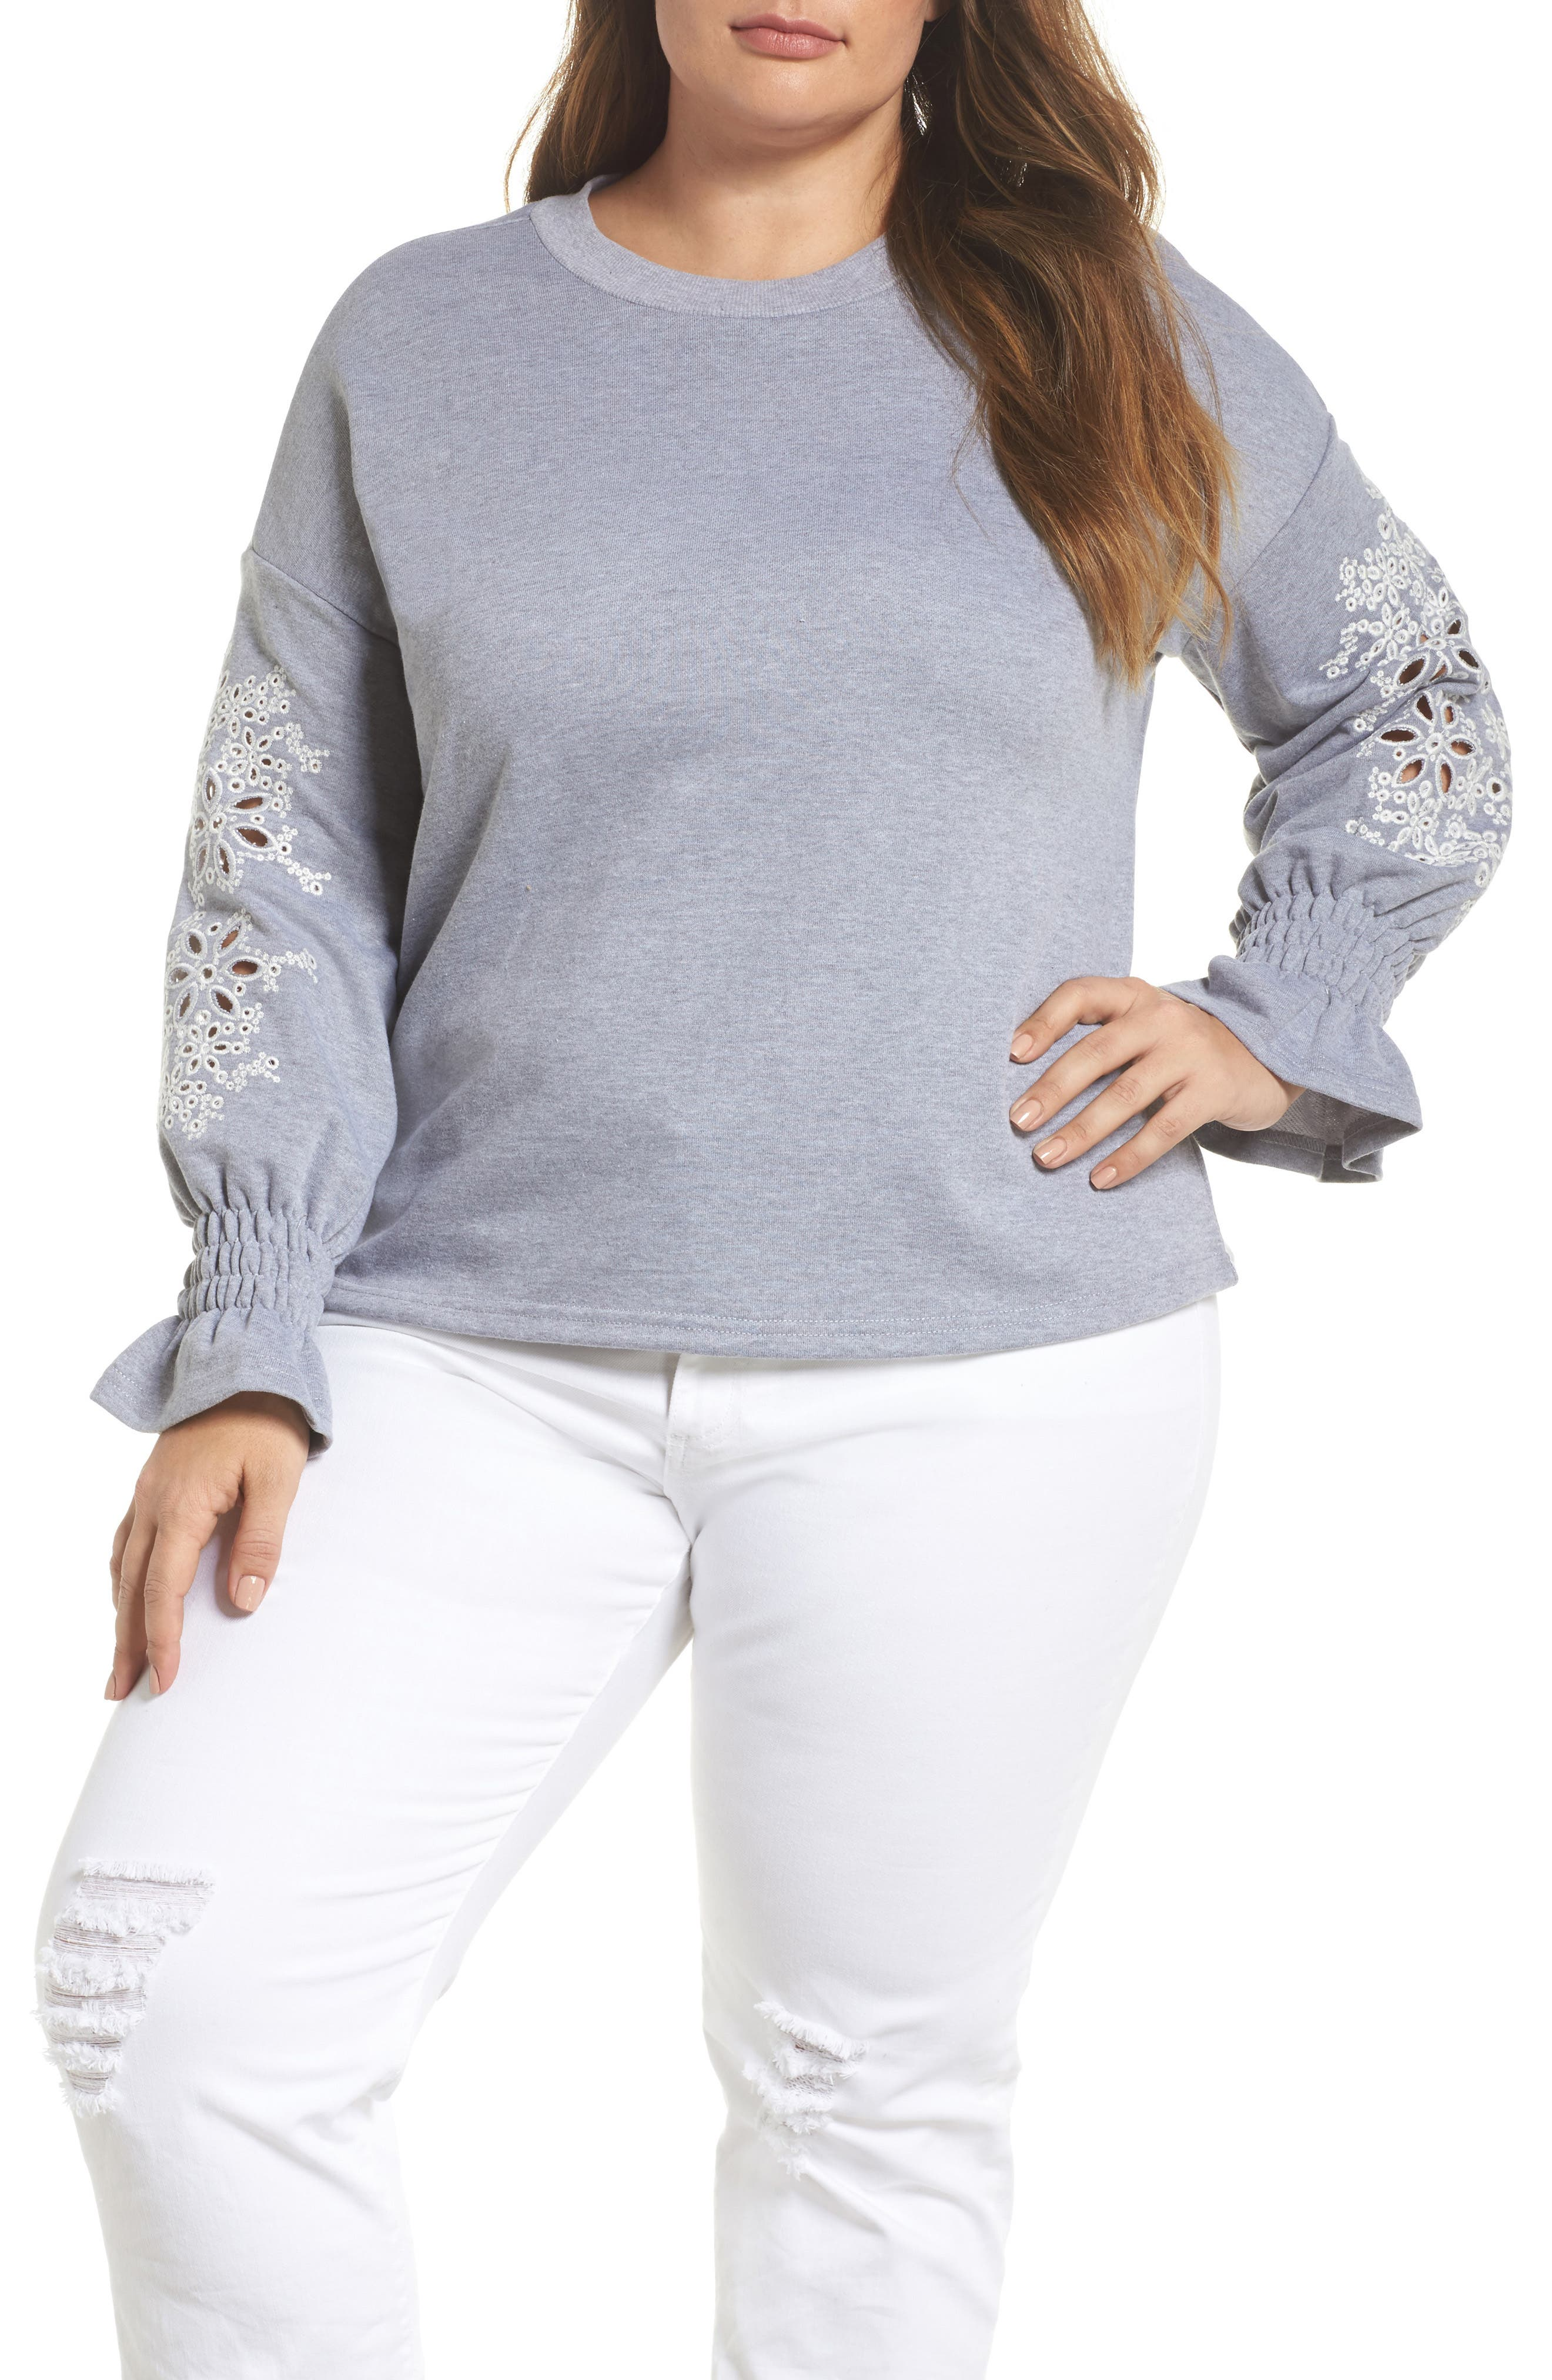 Broderie Anglaise Embellished Sweatshirt,                         Main,                         color, 020